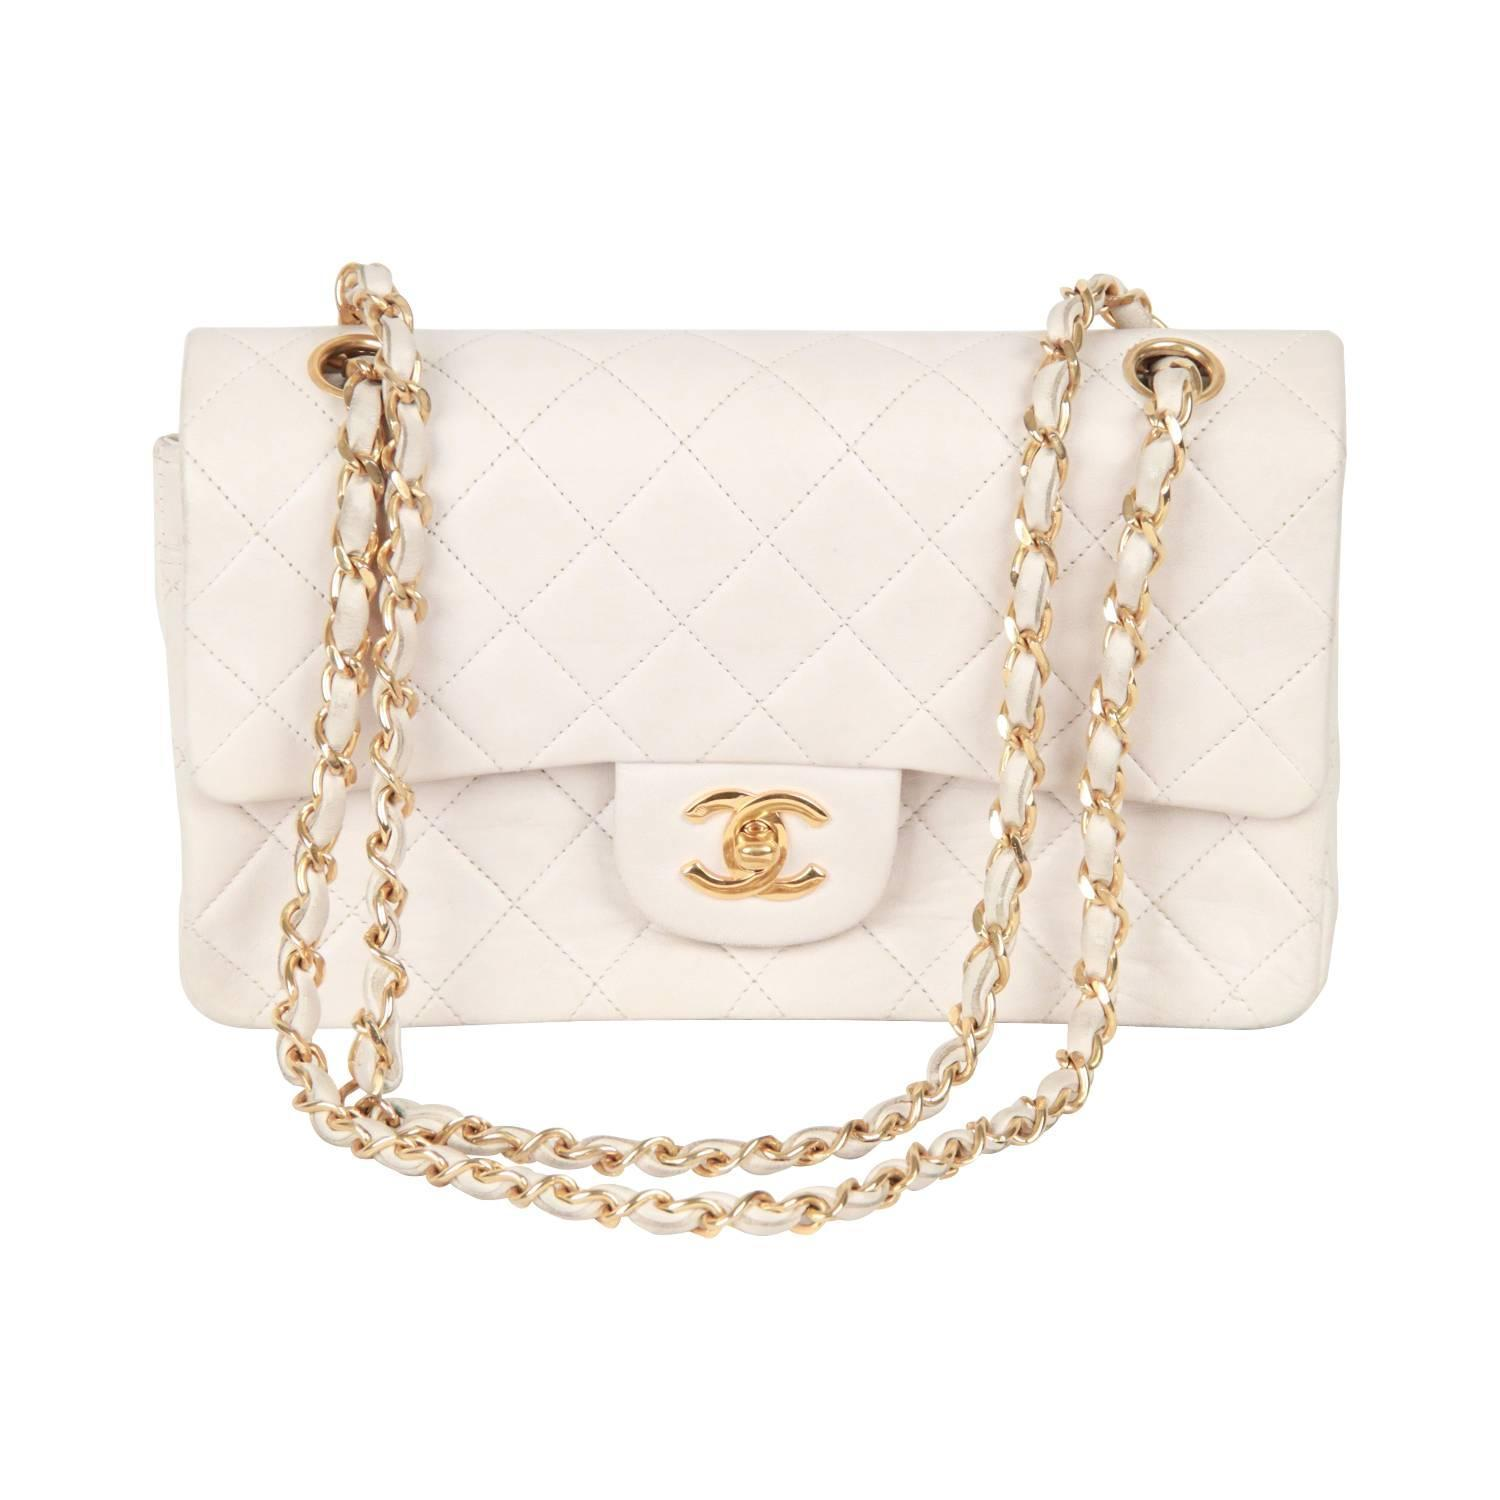 f32f6b84e6a1 CHANEL Vintage 90s White QUILTED Leather DOUBLE FLAP BAG Small For Sale at  1stdibs